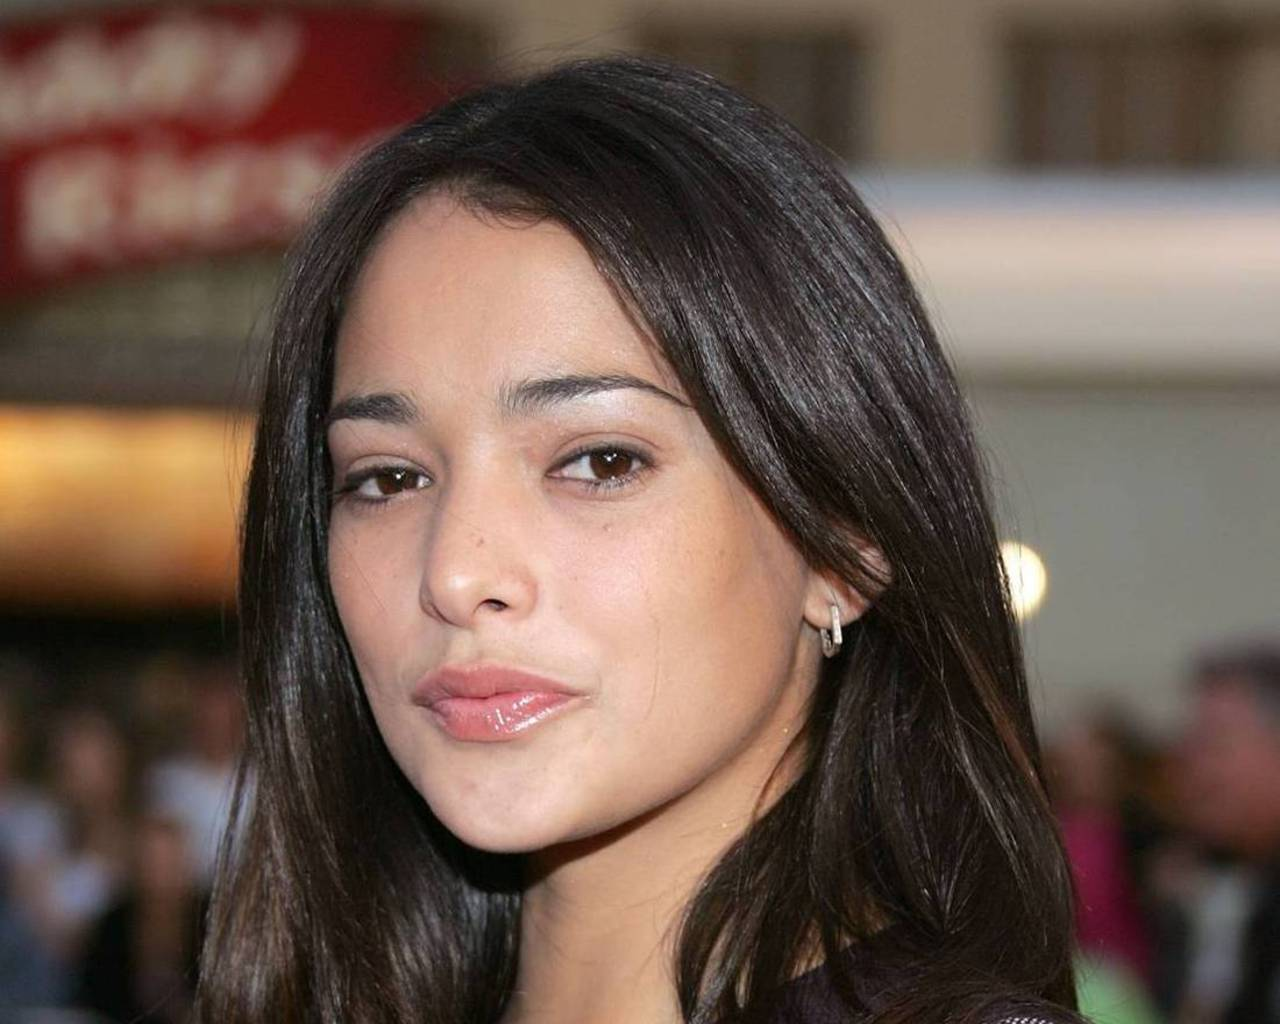 New Hot Natalie Martinez Actresses Full HD Wallpaper Wallpaper